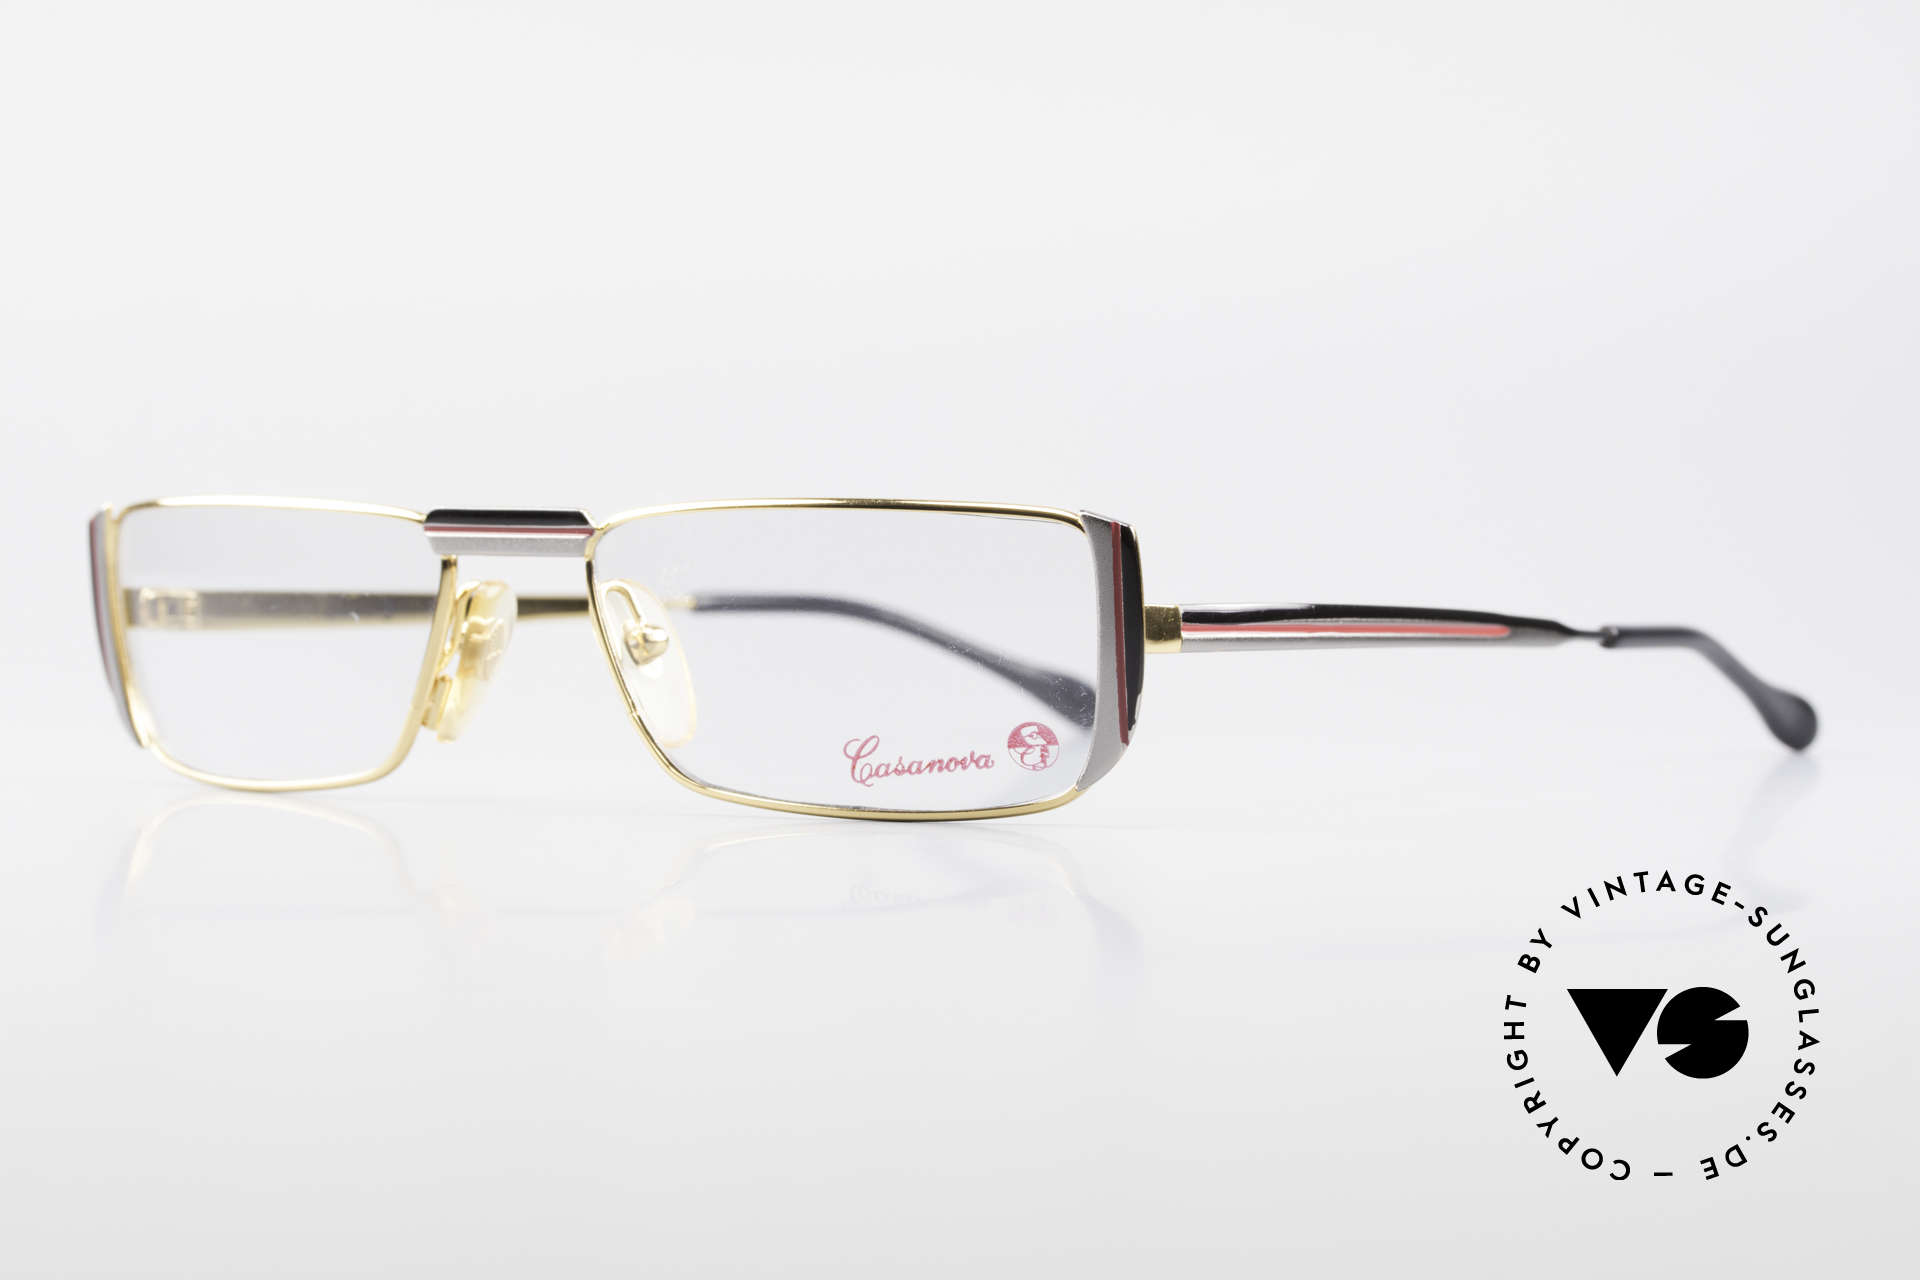 Casanova NM3 Square Reading Eyeglasses 80s, black/red/gray pattern on the front & on the temples, Made for Men and Women